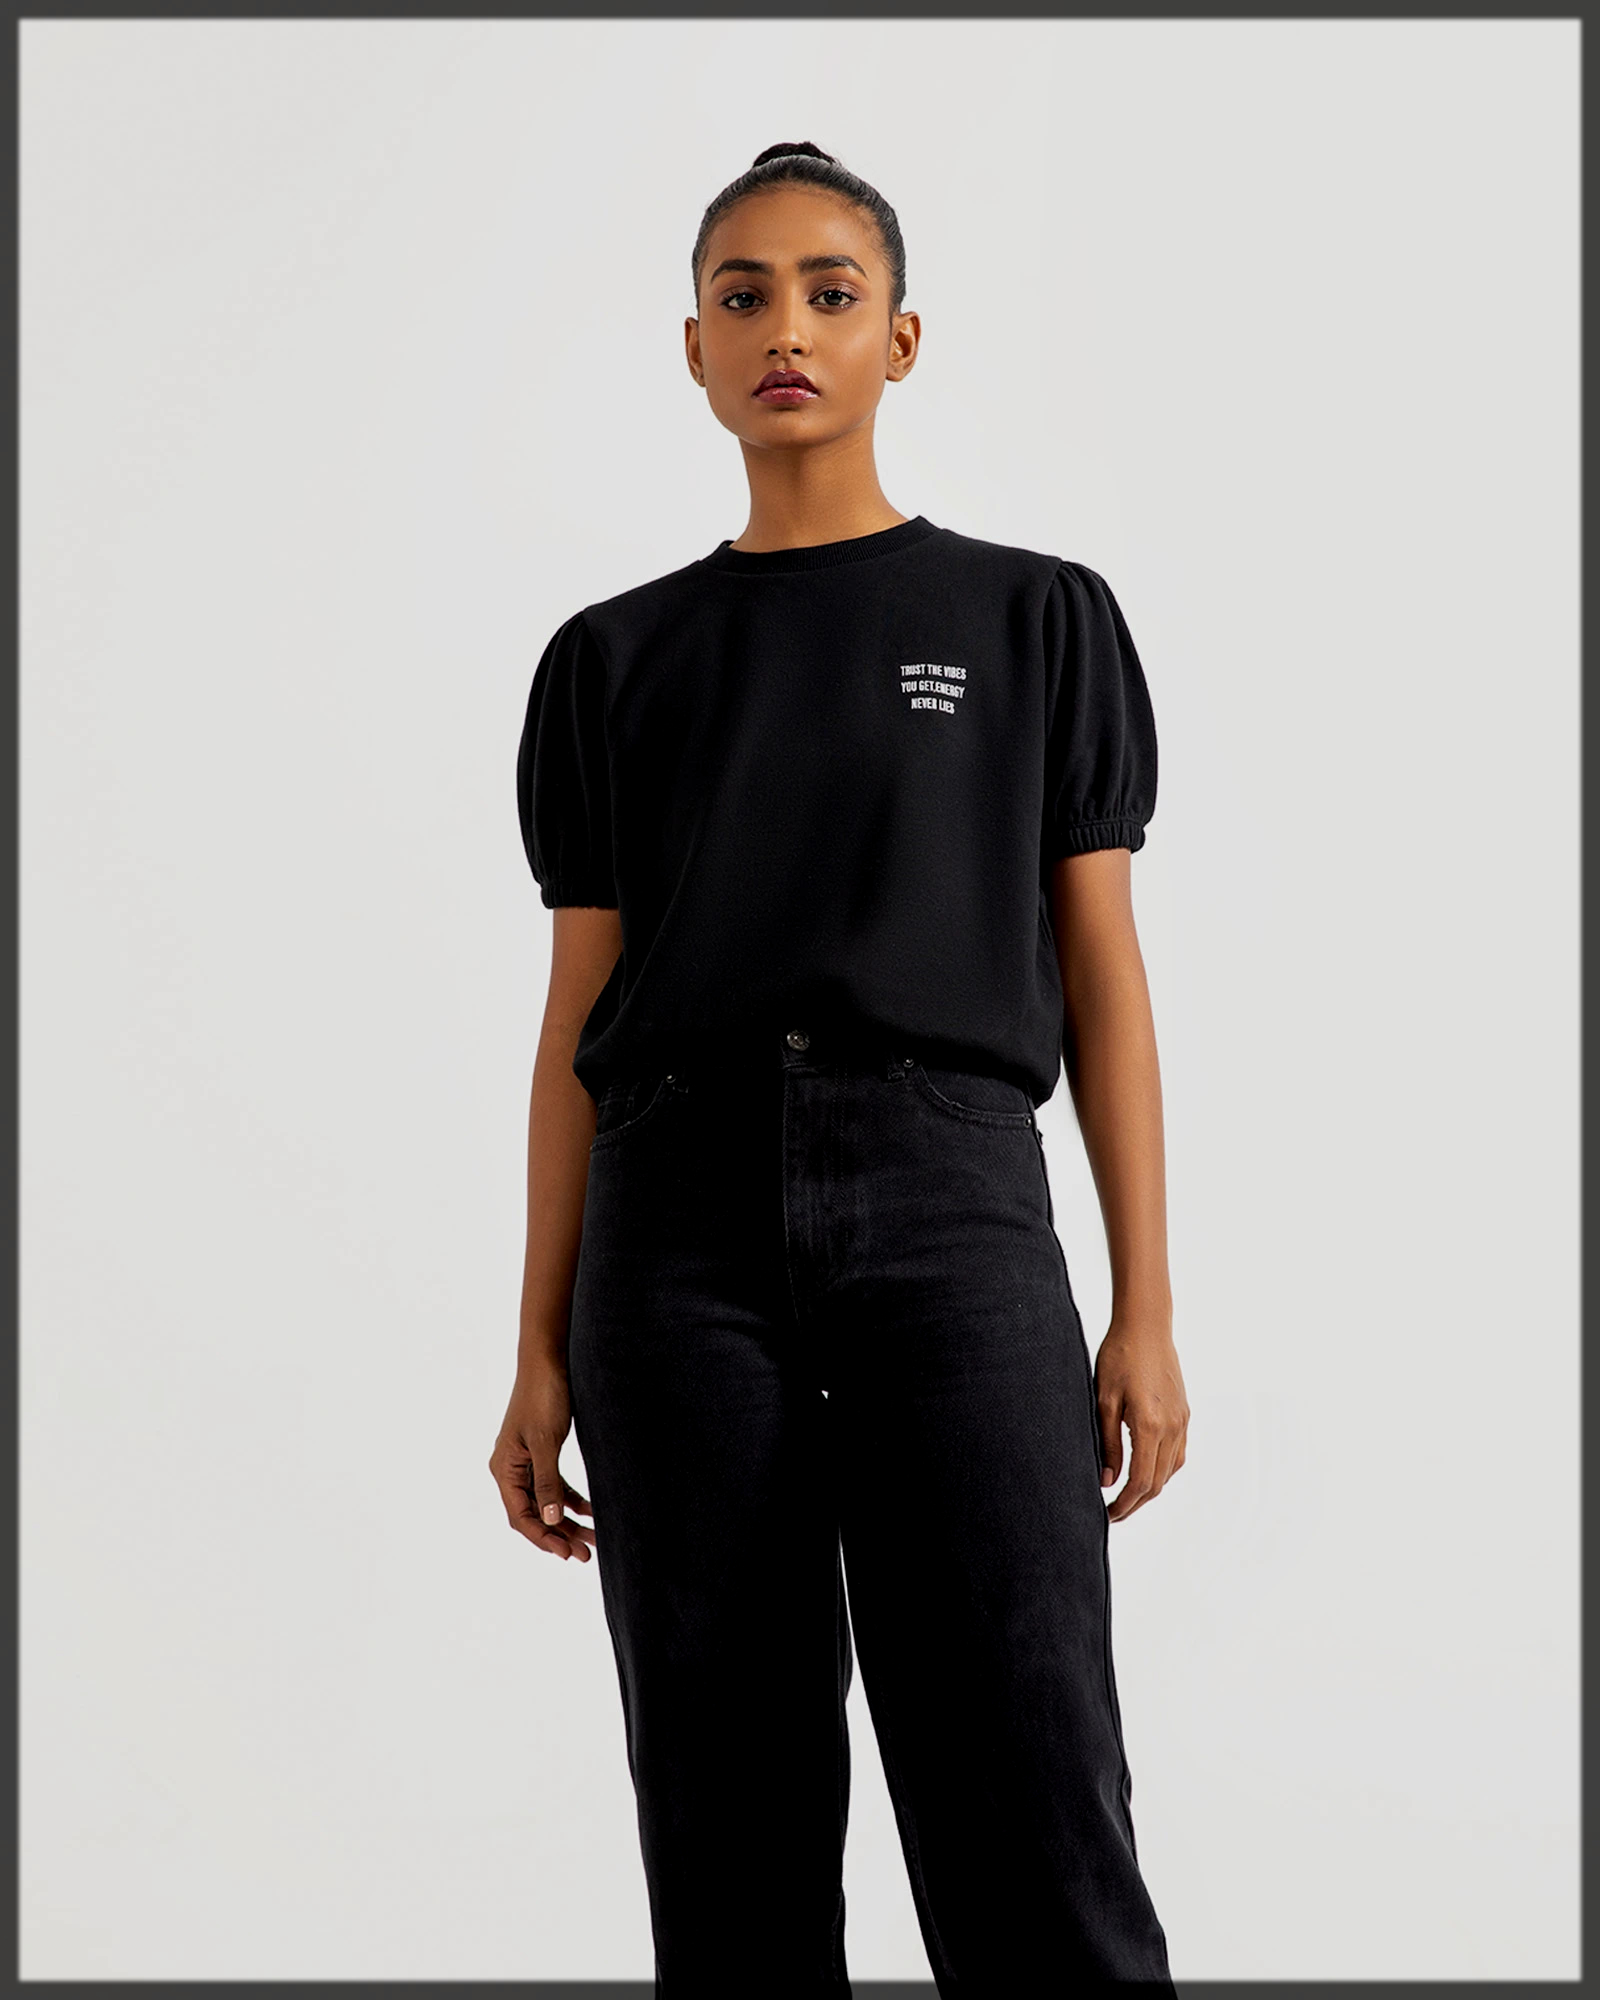 Regular Fit Tees with Poof Sleeves by Outfitters